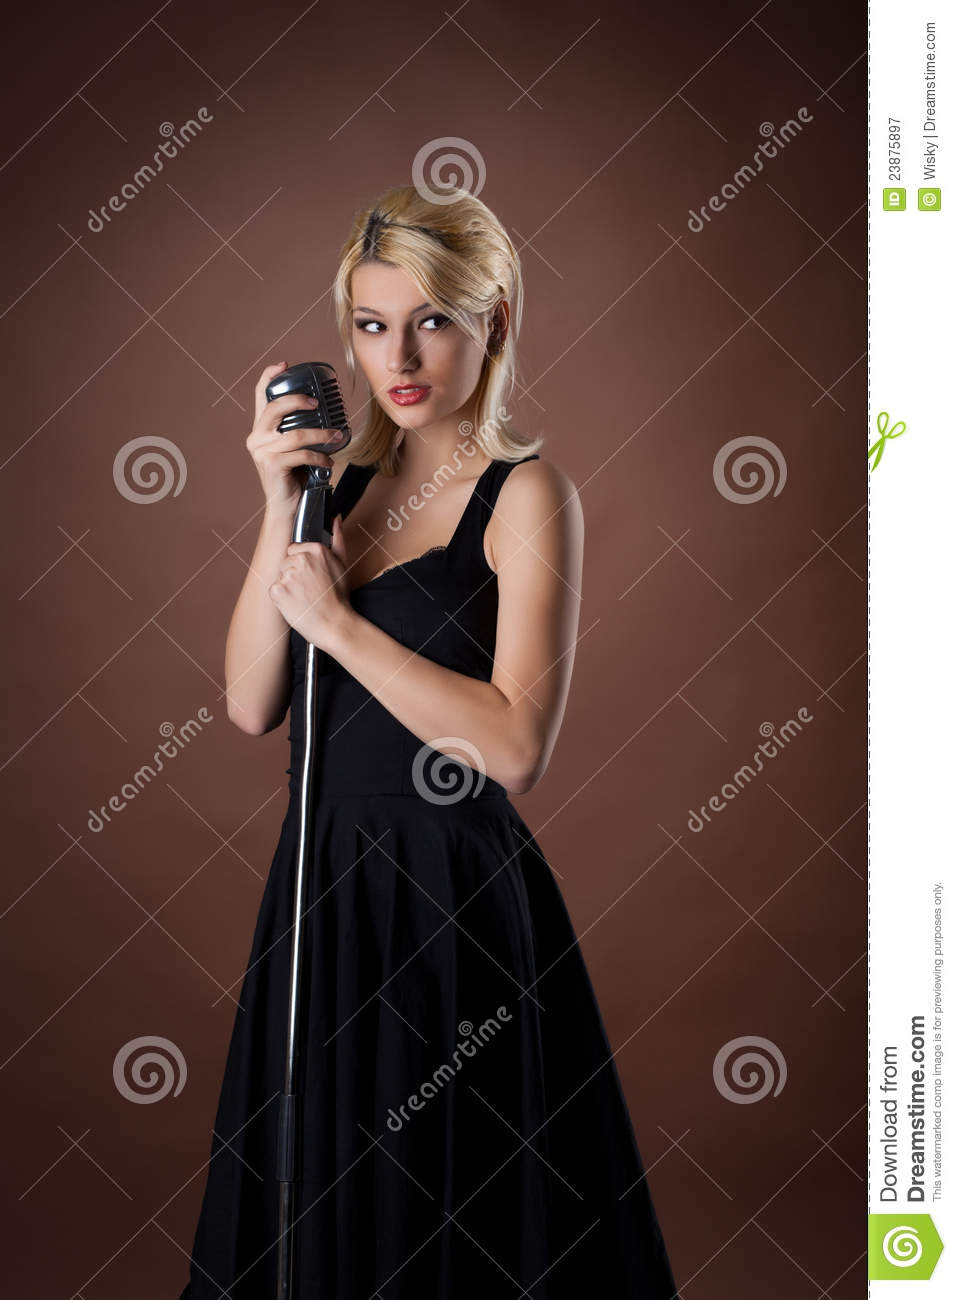 Woman pin-up portrait in black with microphone